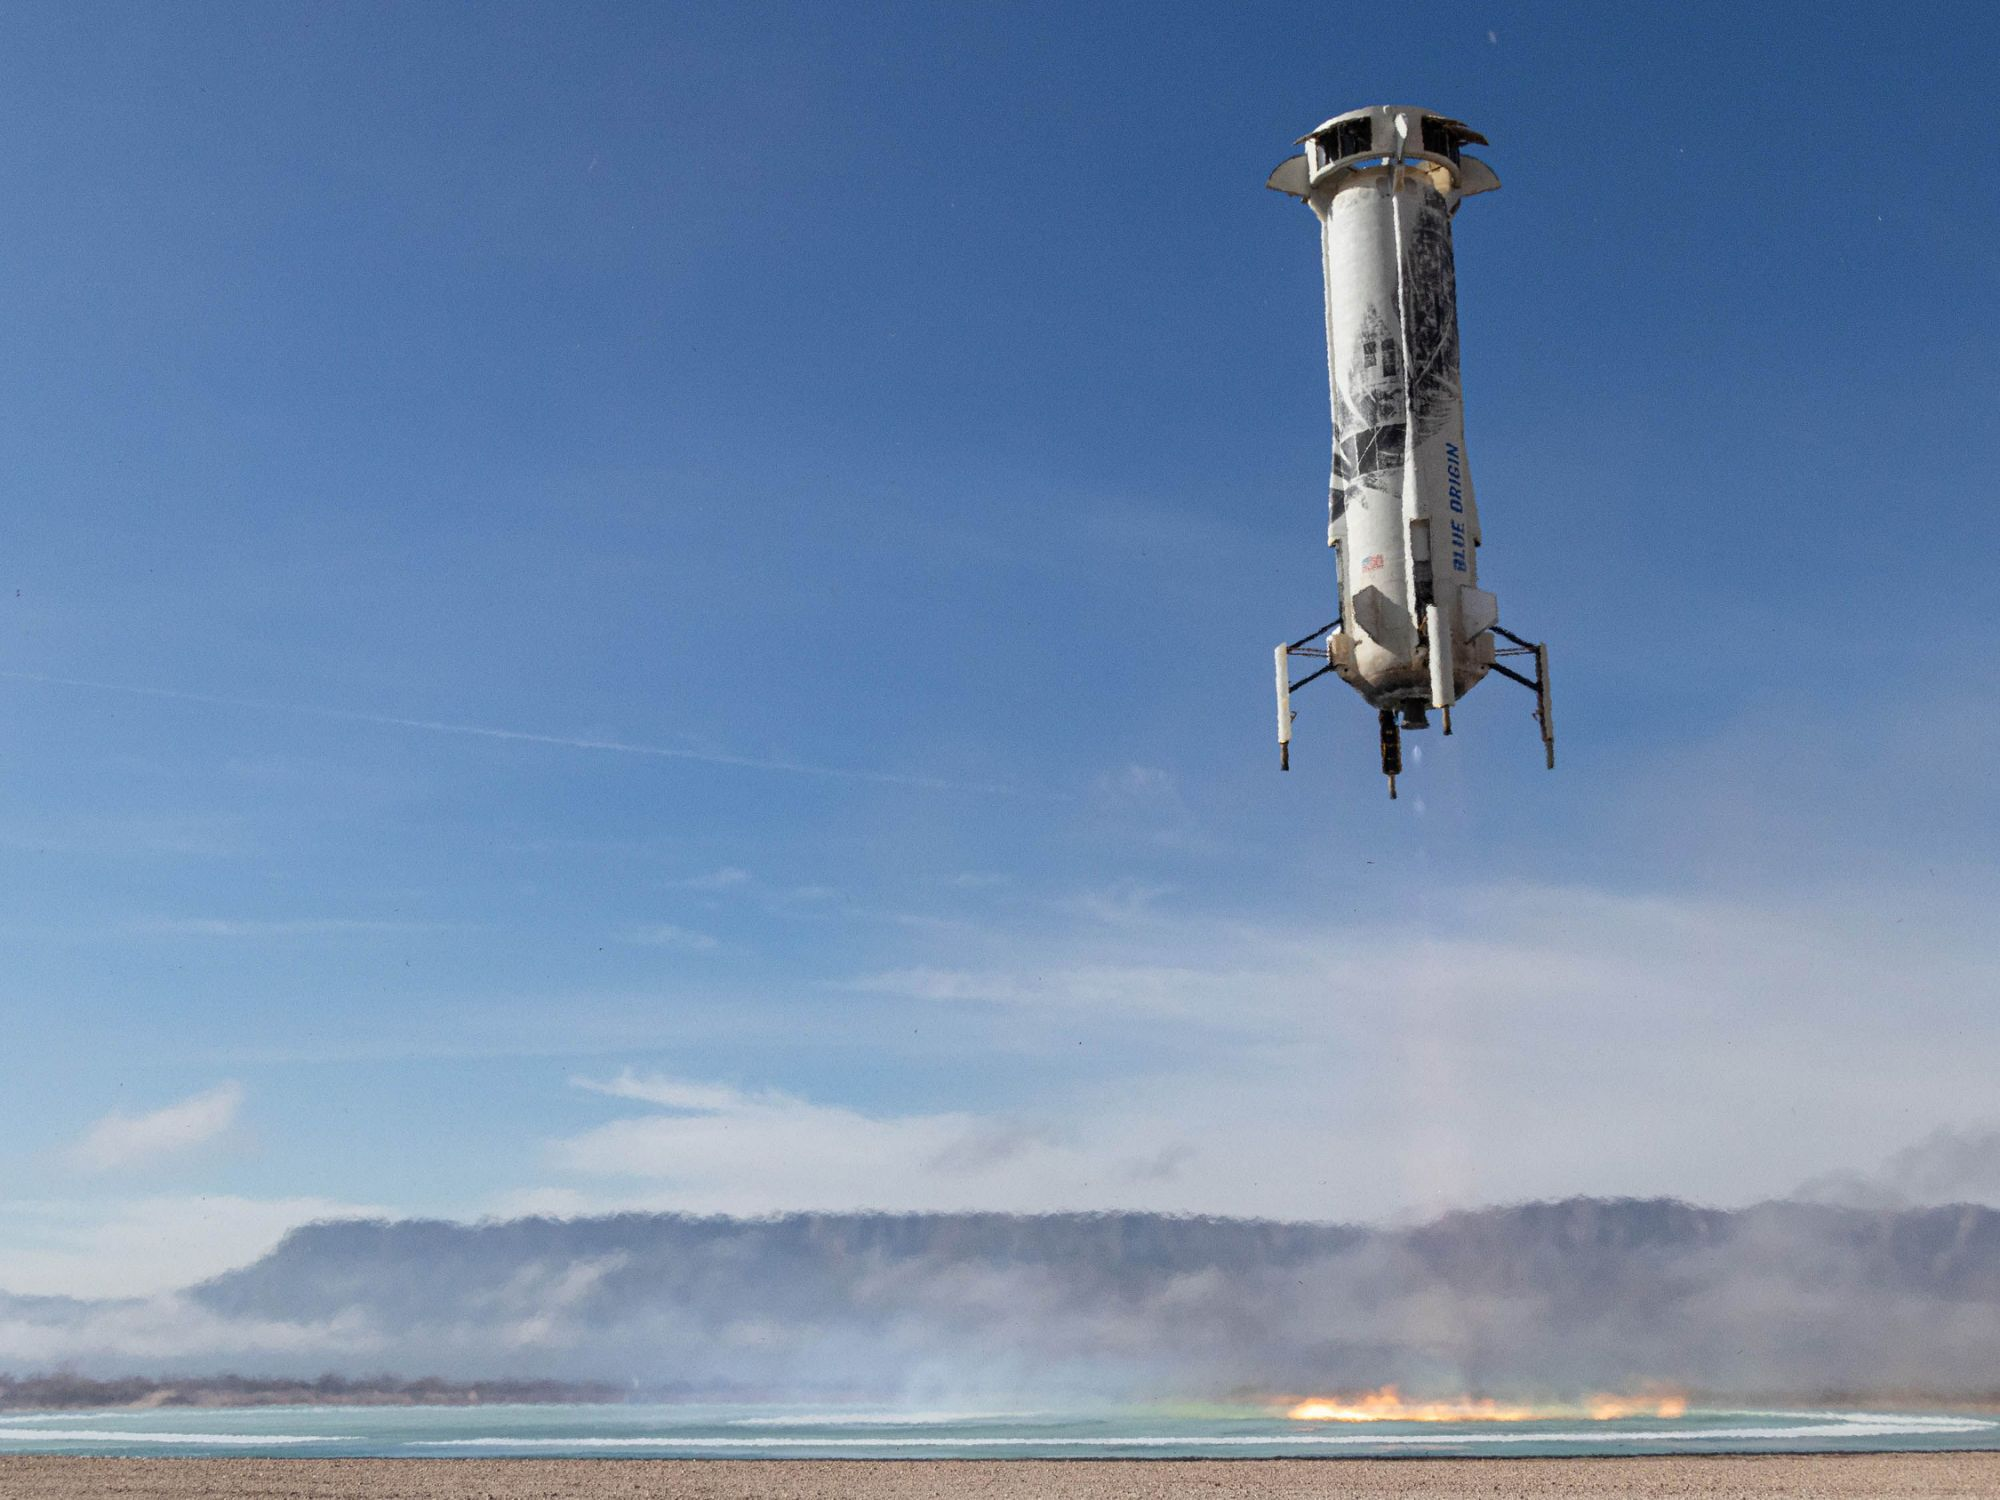 Blue Origin set to launch a New Shepard rocket outfitted with crew upgrades as it readies for astronaut flight